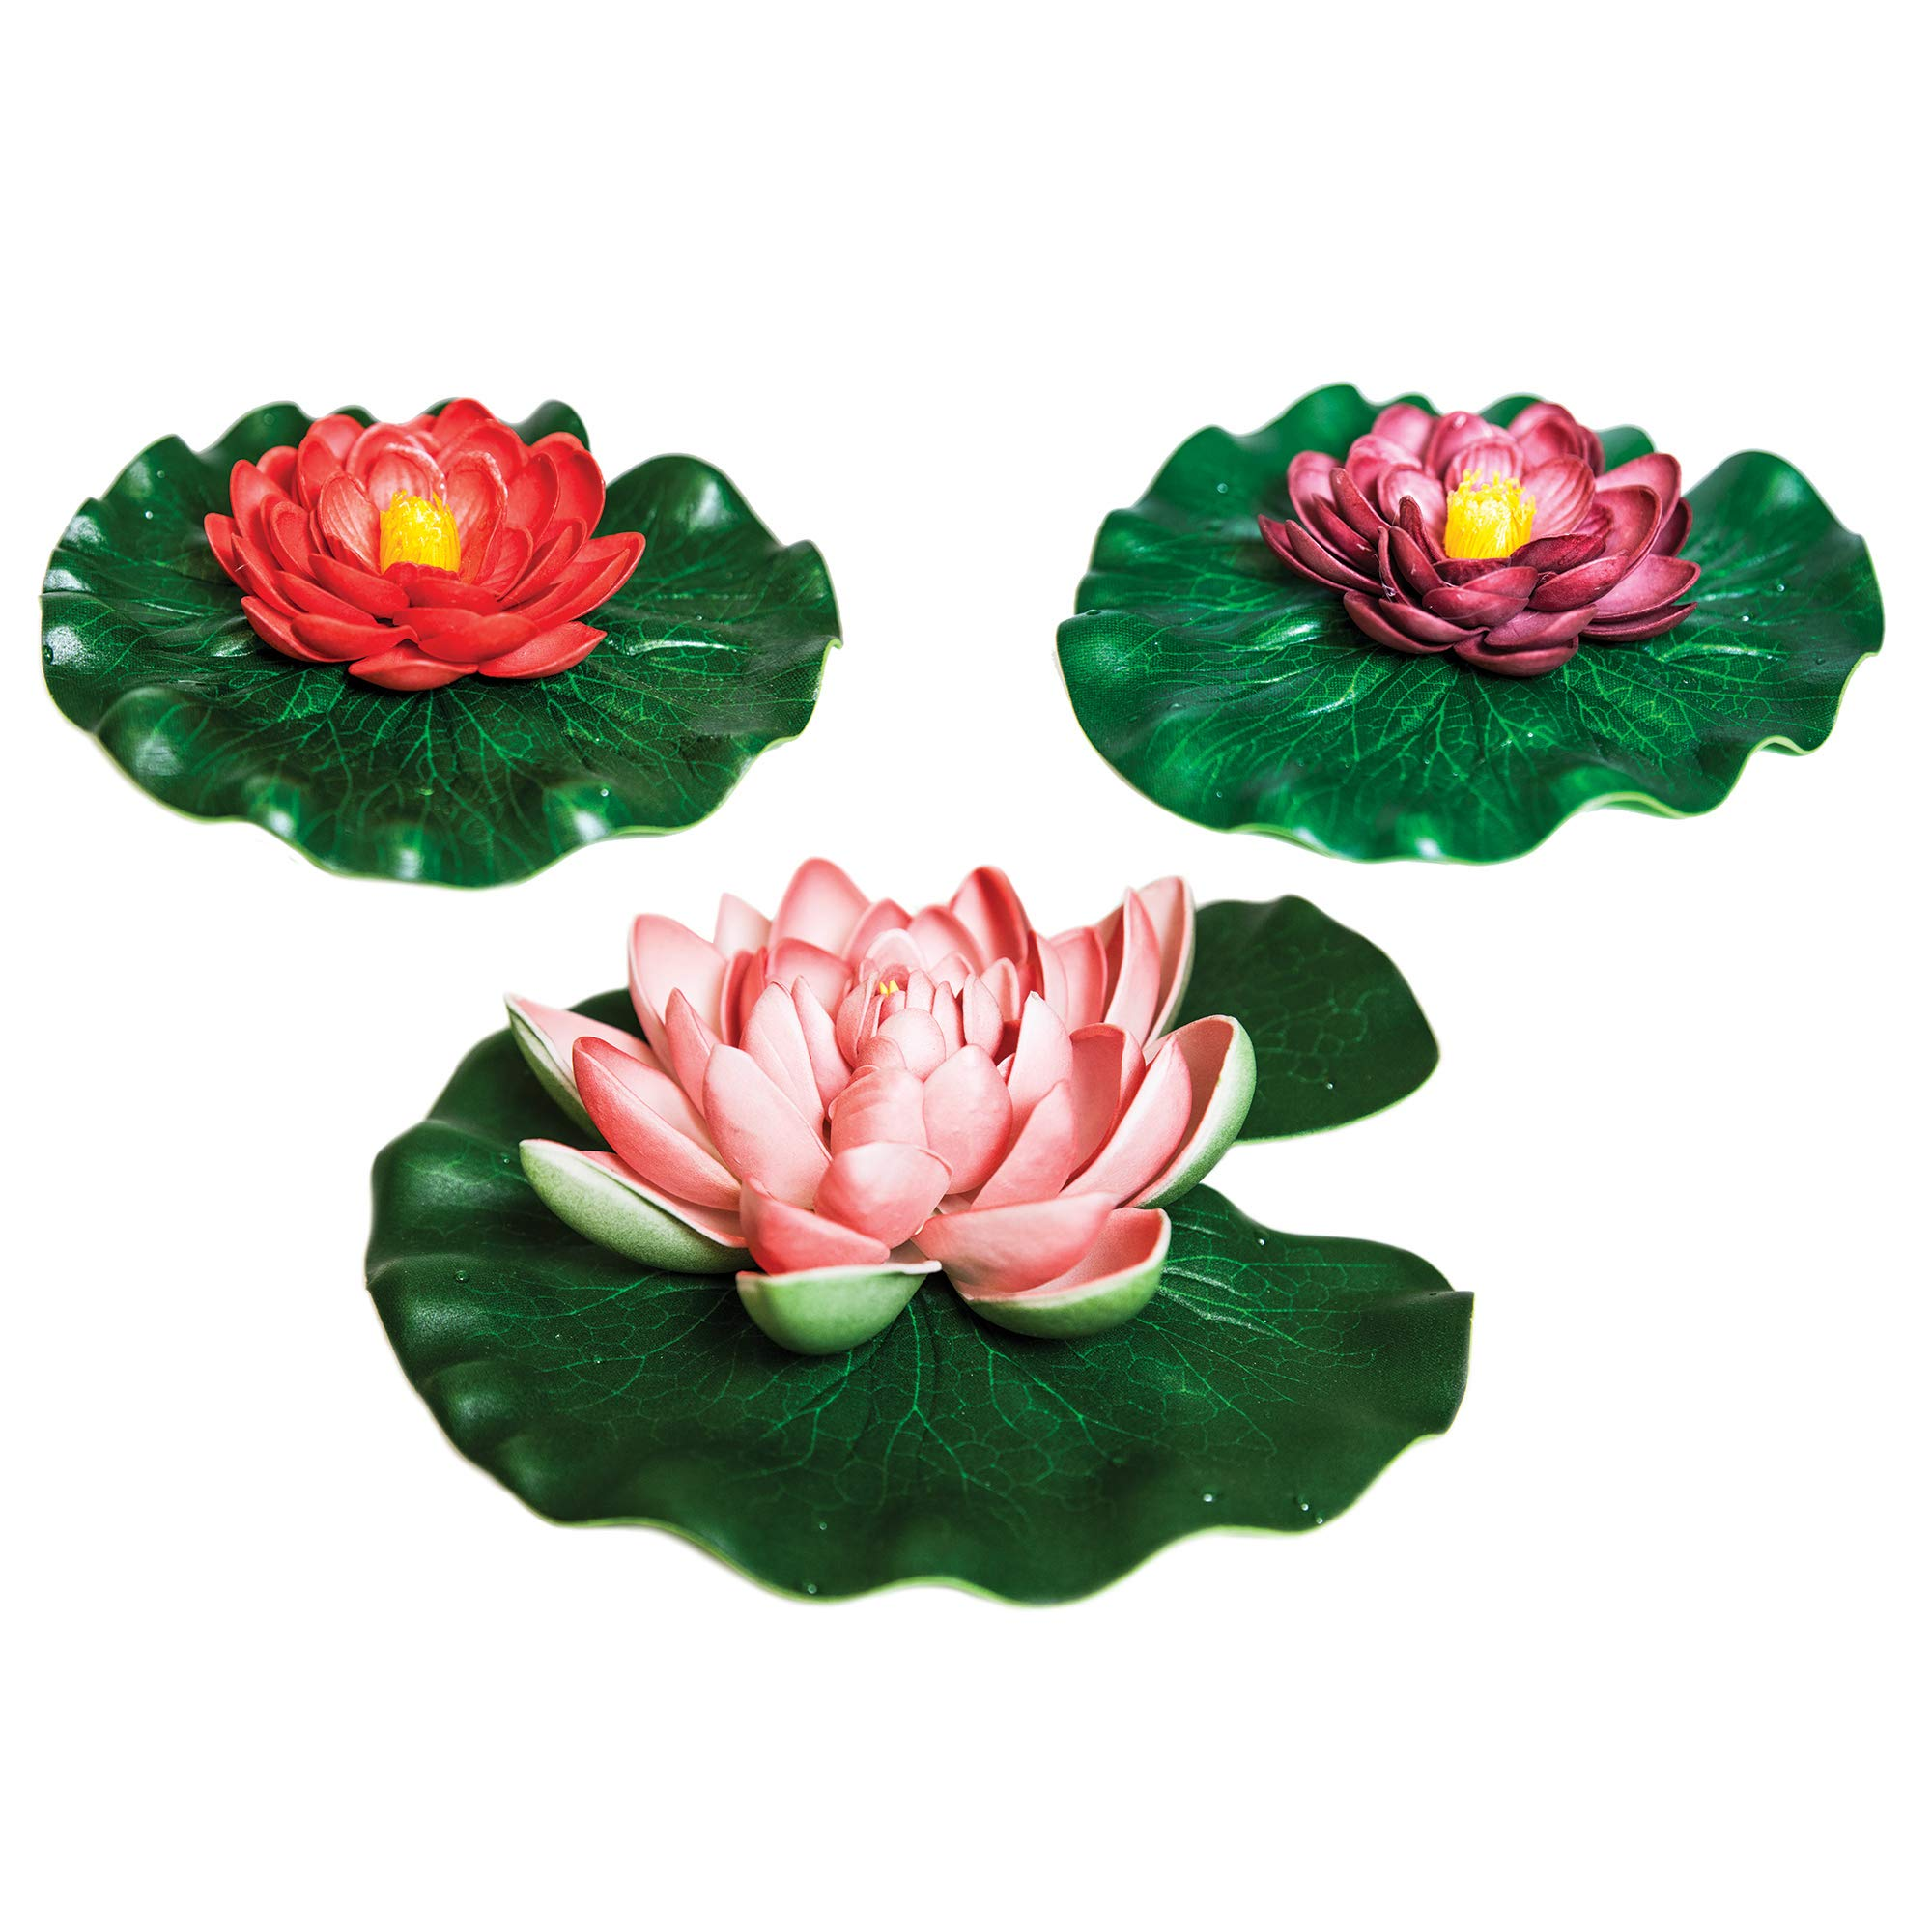 OASE 45382 Floating Lily Pad, Black